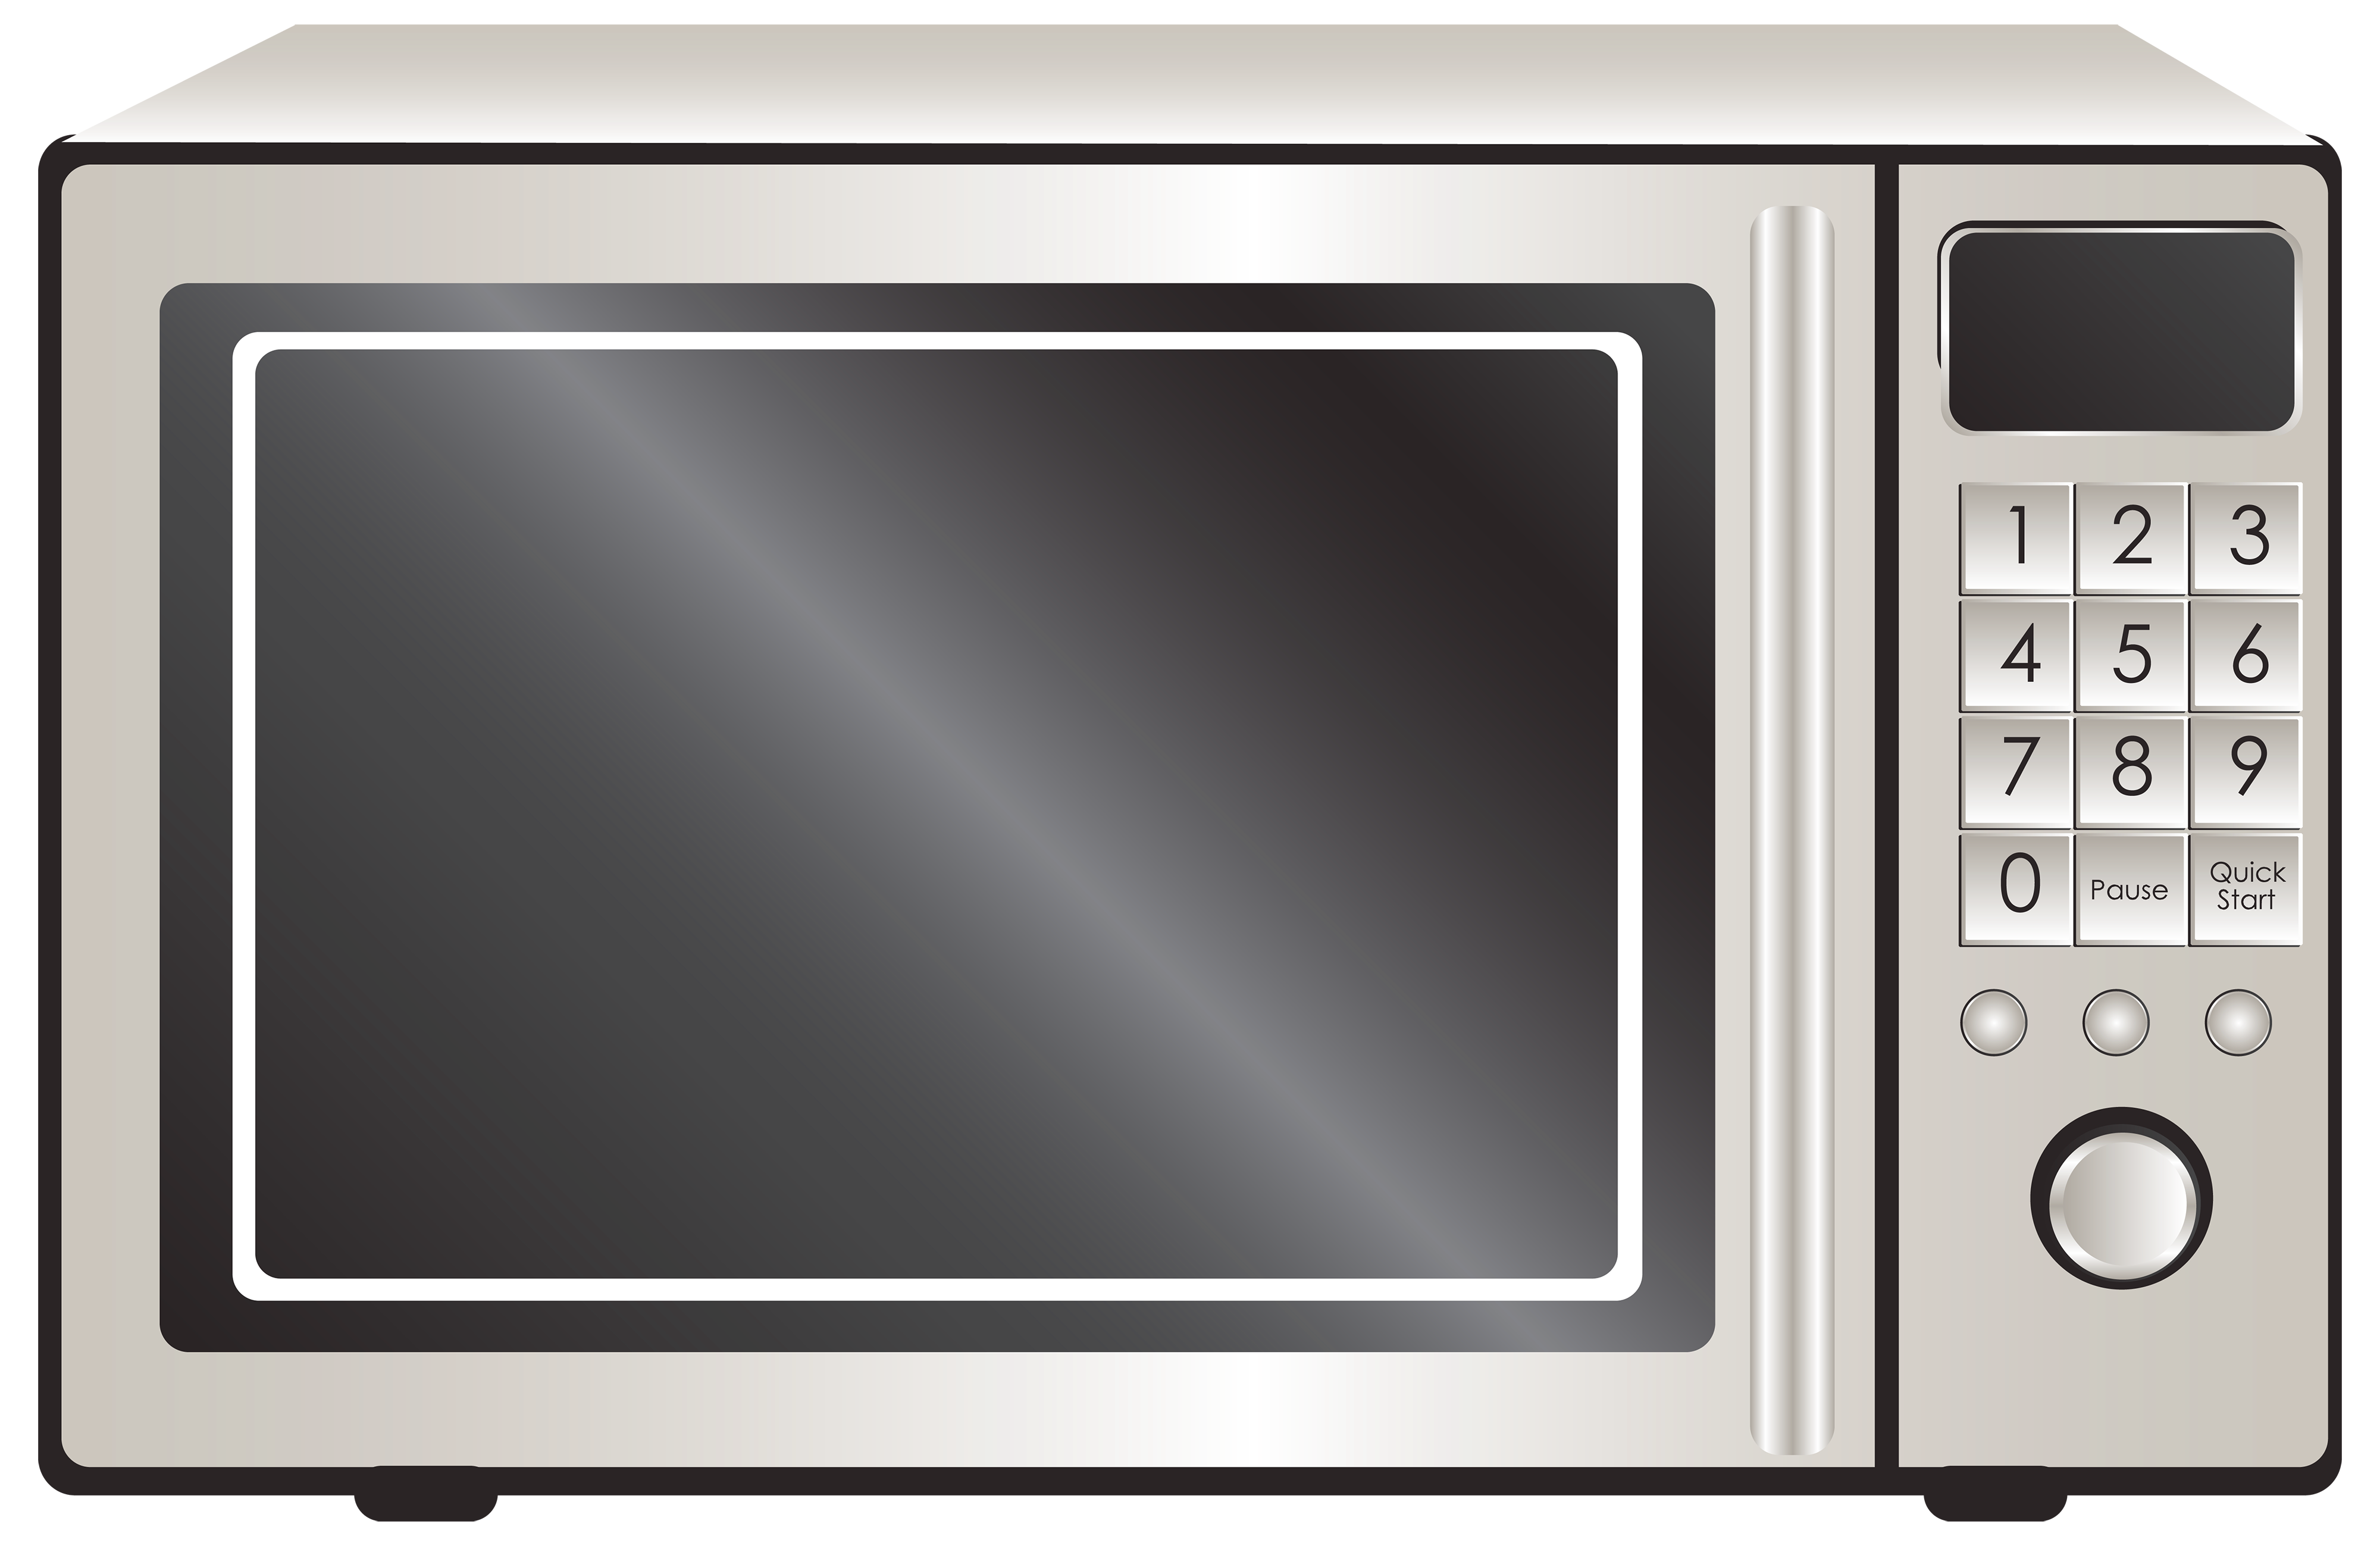 Microwave clipart. Png best web